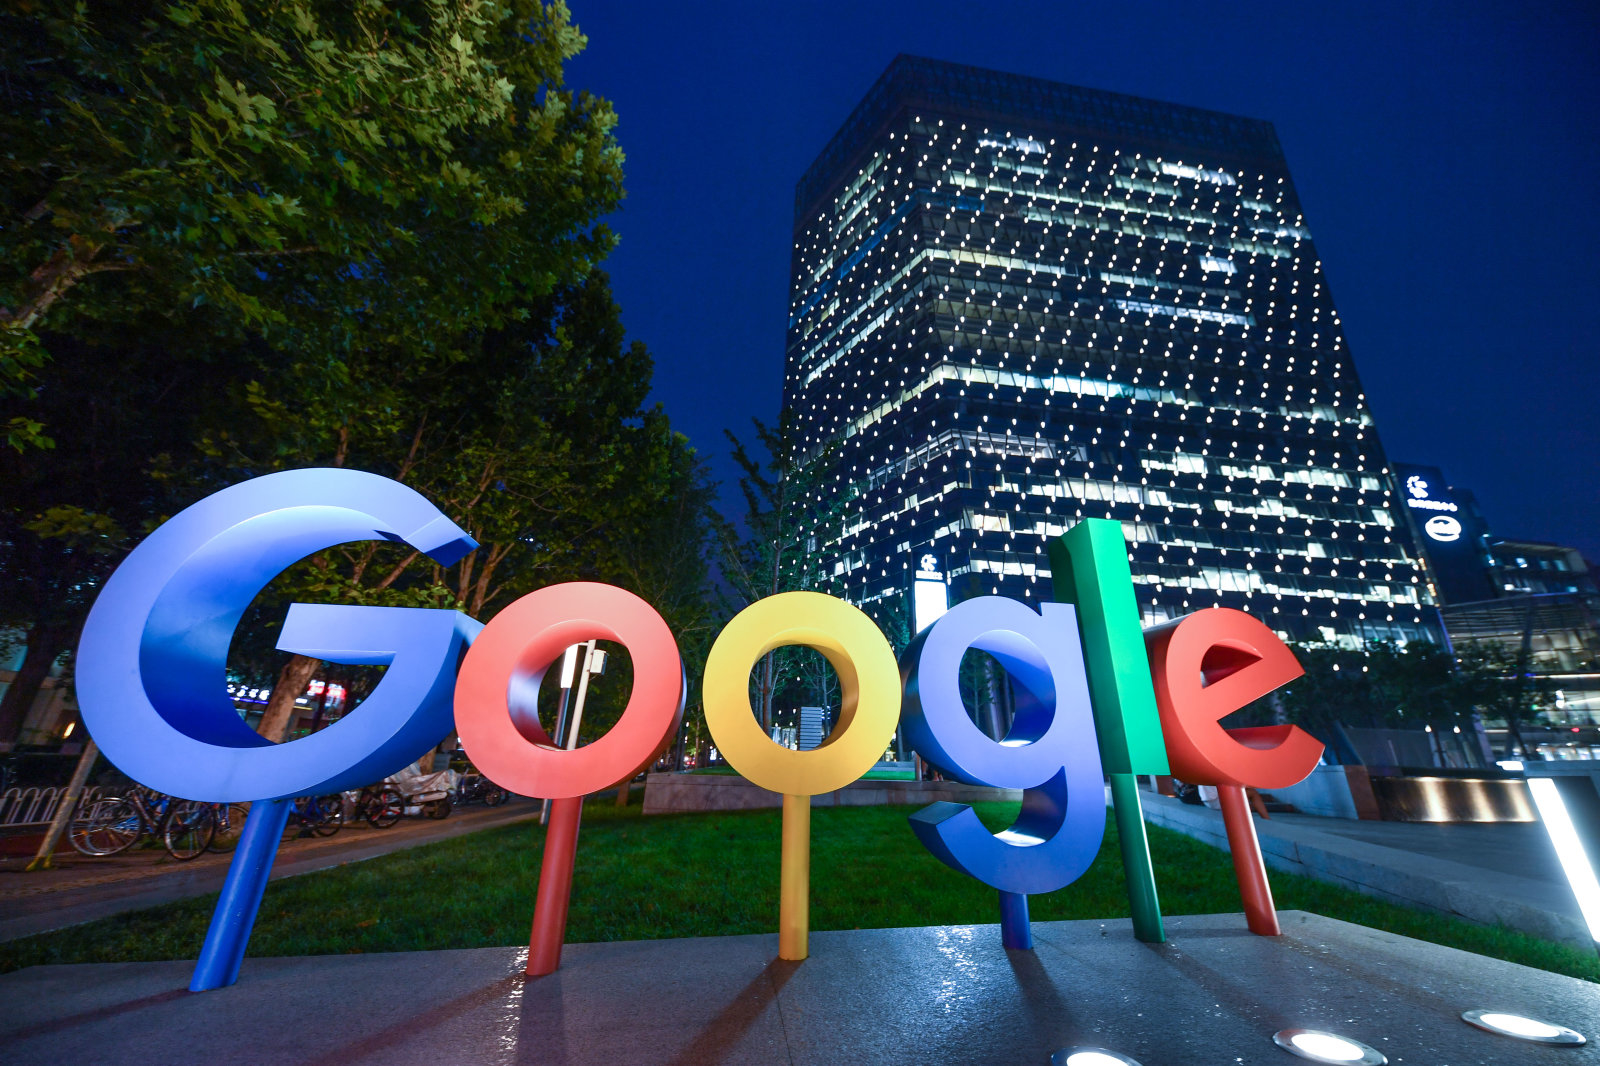 BEIJING, CHINA - AUGUST 07: The Google Inc. logo is illuminated in front of Google Beijing Office on August 7, 2018 in Beijing, China. According to China Daily, Google Inc. plans to offer cloud services in Mainland China, and it is in talks with several Chinese companies, such as Tencent Holdings Ltd and Inspur Group. (Photo by VCG)